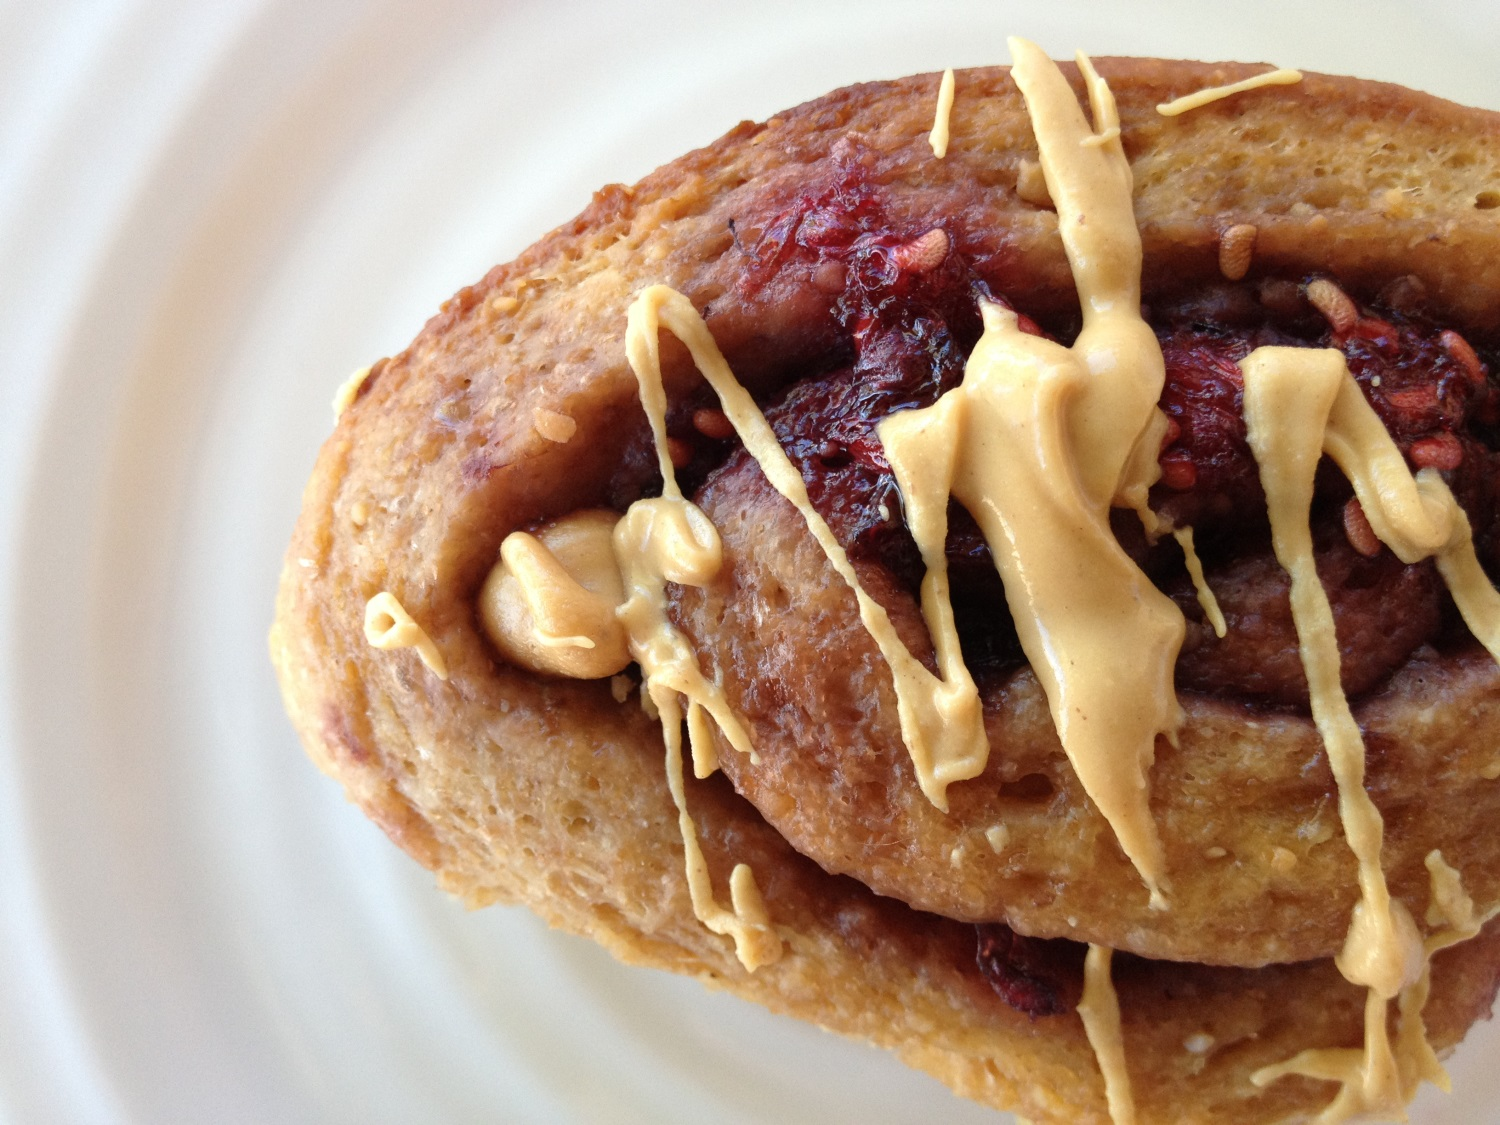 Peanut-Butter and Jelly Rolls